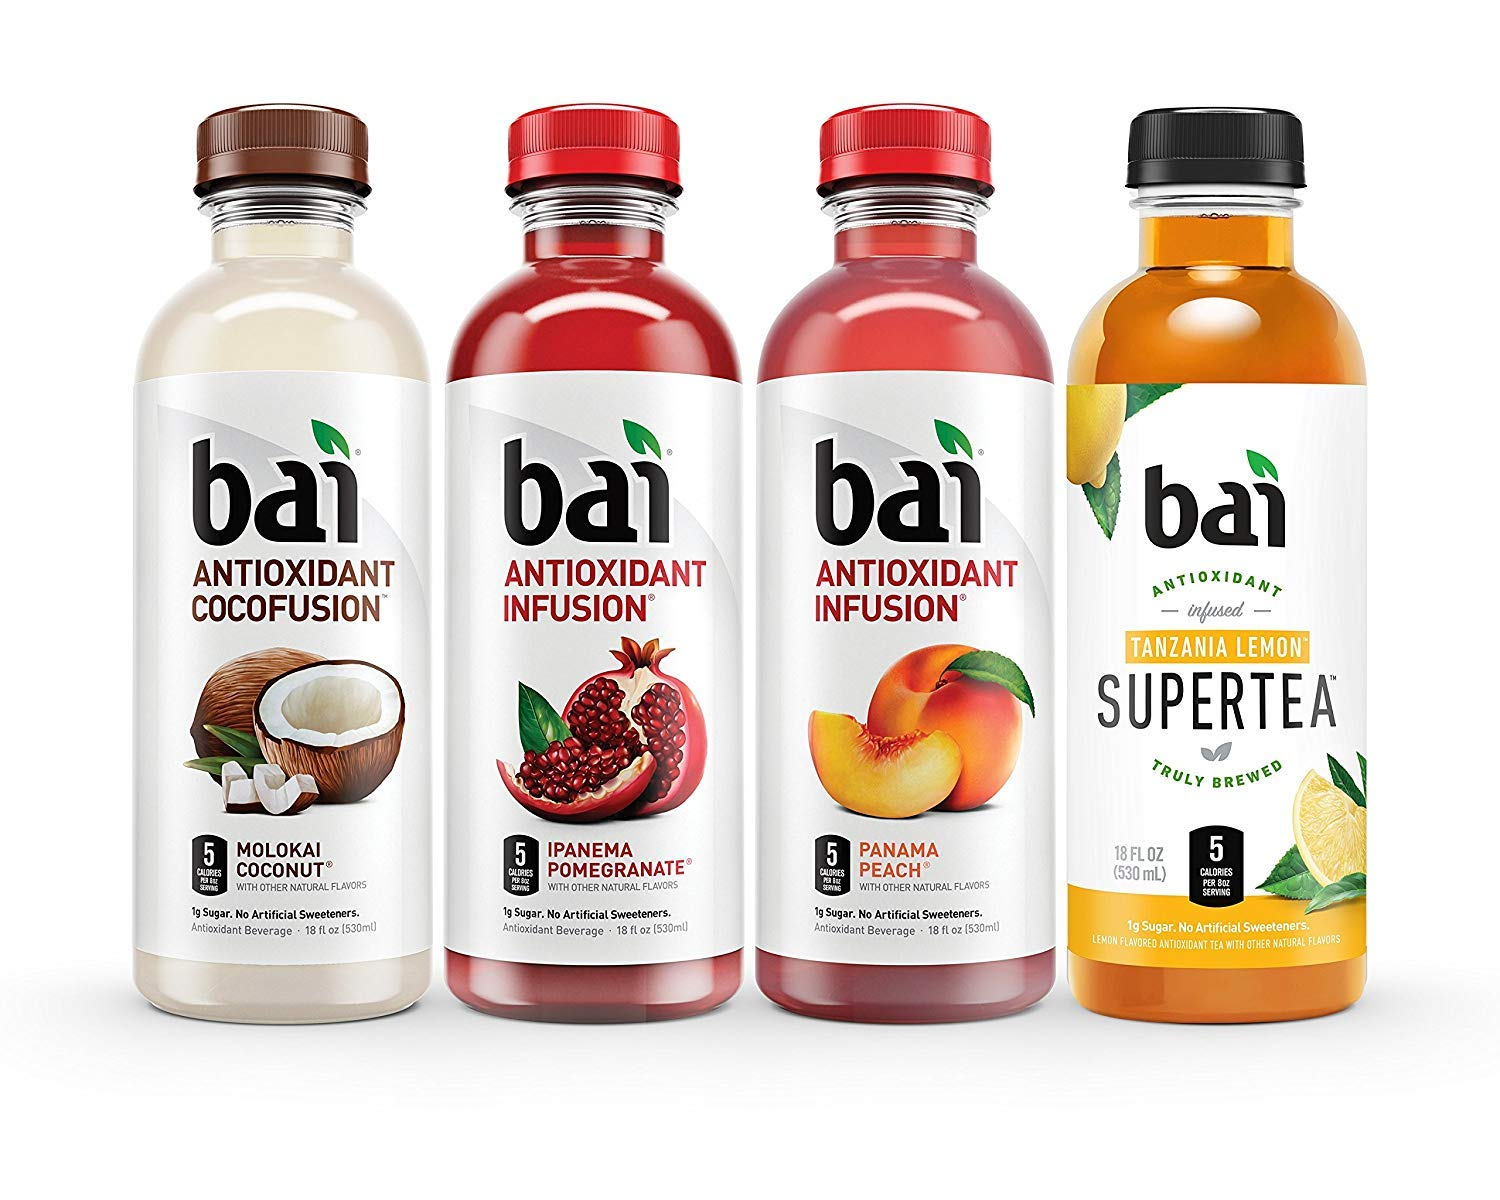 Bai Flavored Water, Mountainside Variety Pack, Antioxidant Infused Drinks, 18 Fluid Ounce Bottles (Mountainside Variety Pack, 2 Pack of 12) by bai